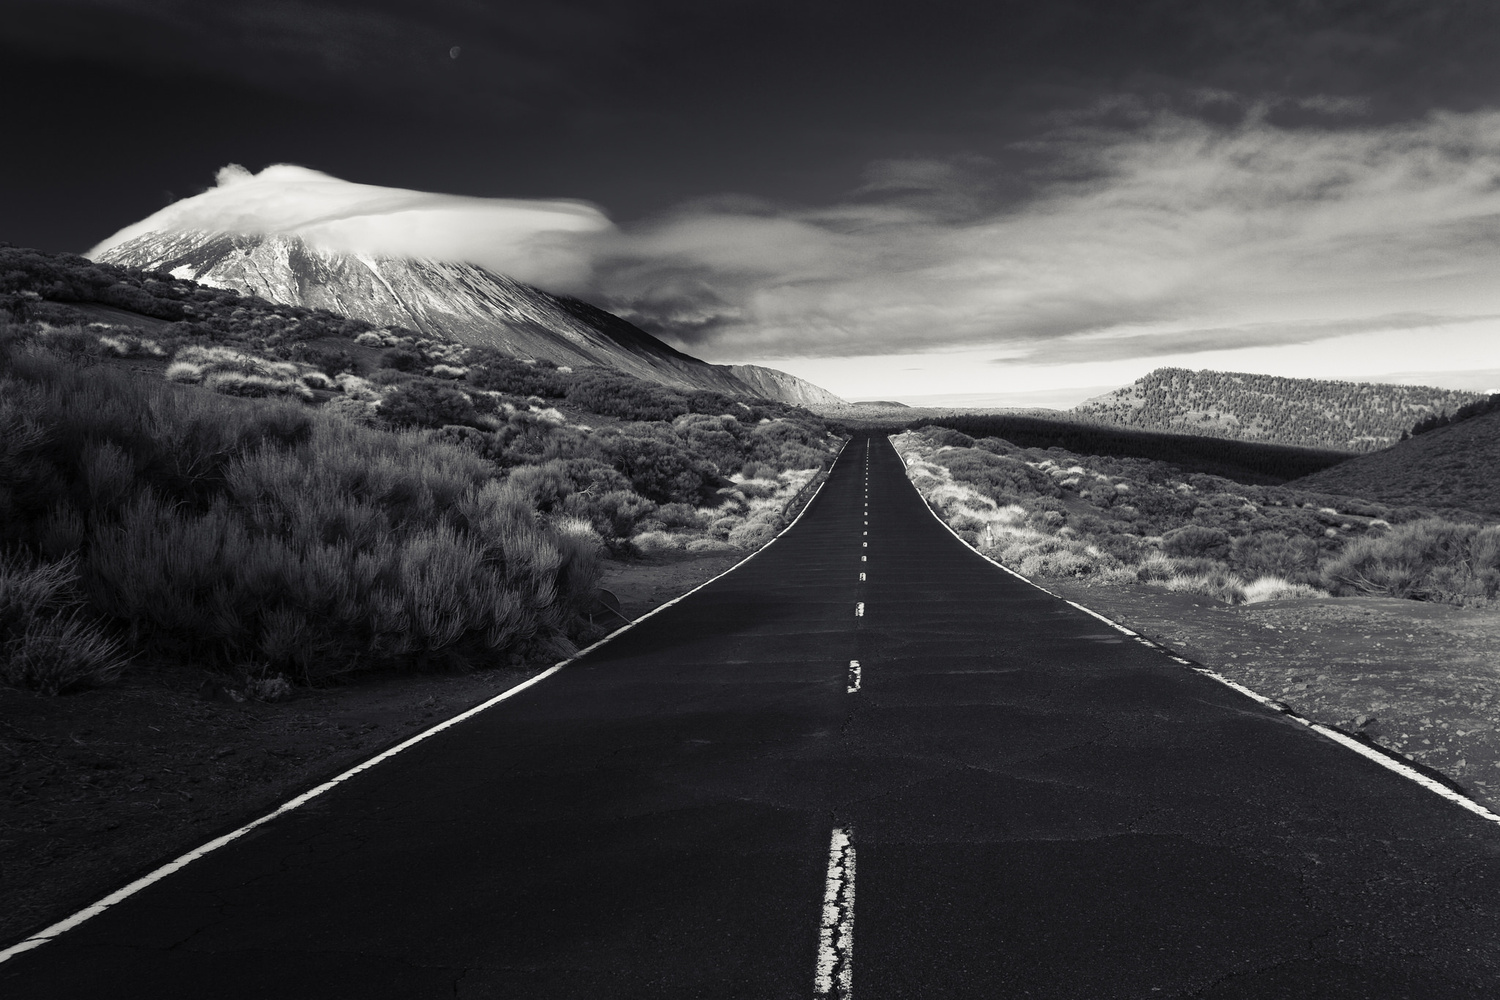 Teide by Thomas Welte